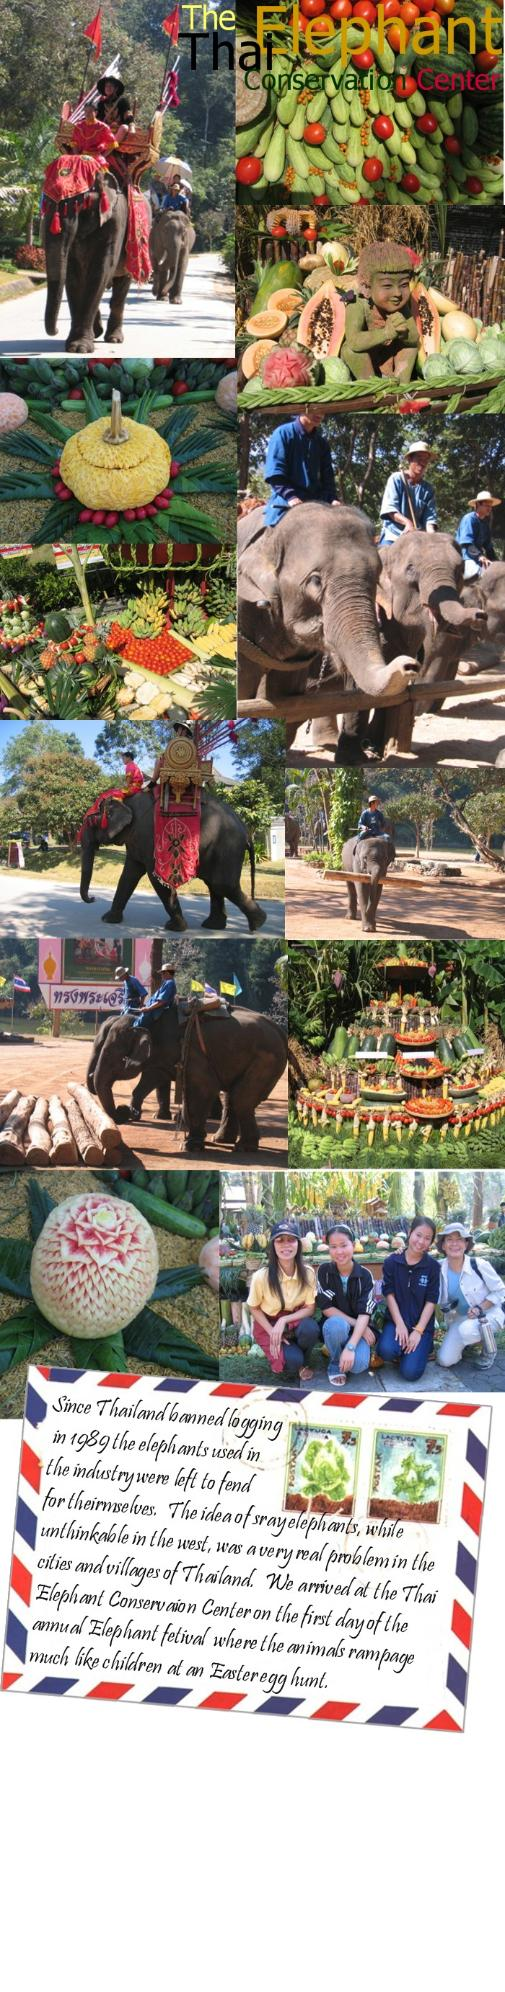 A photo collage from the Thai Elephant Conservation Center